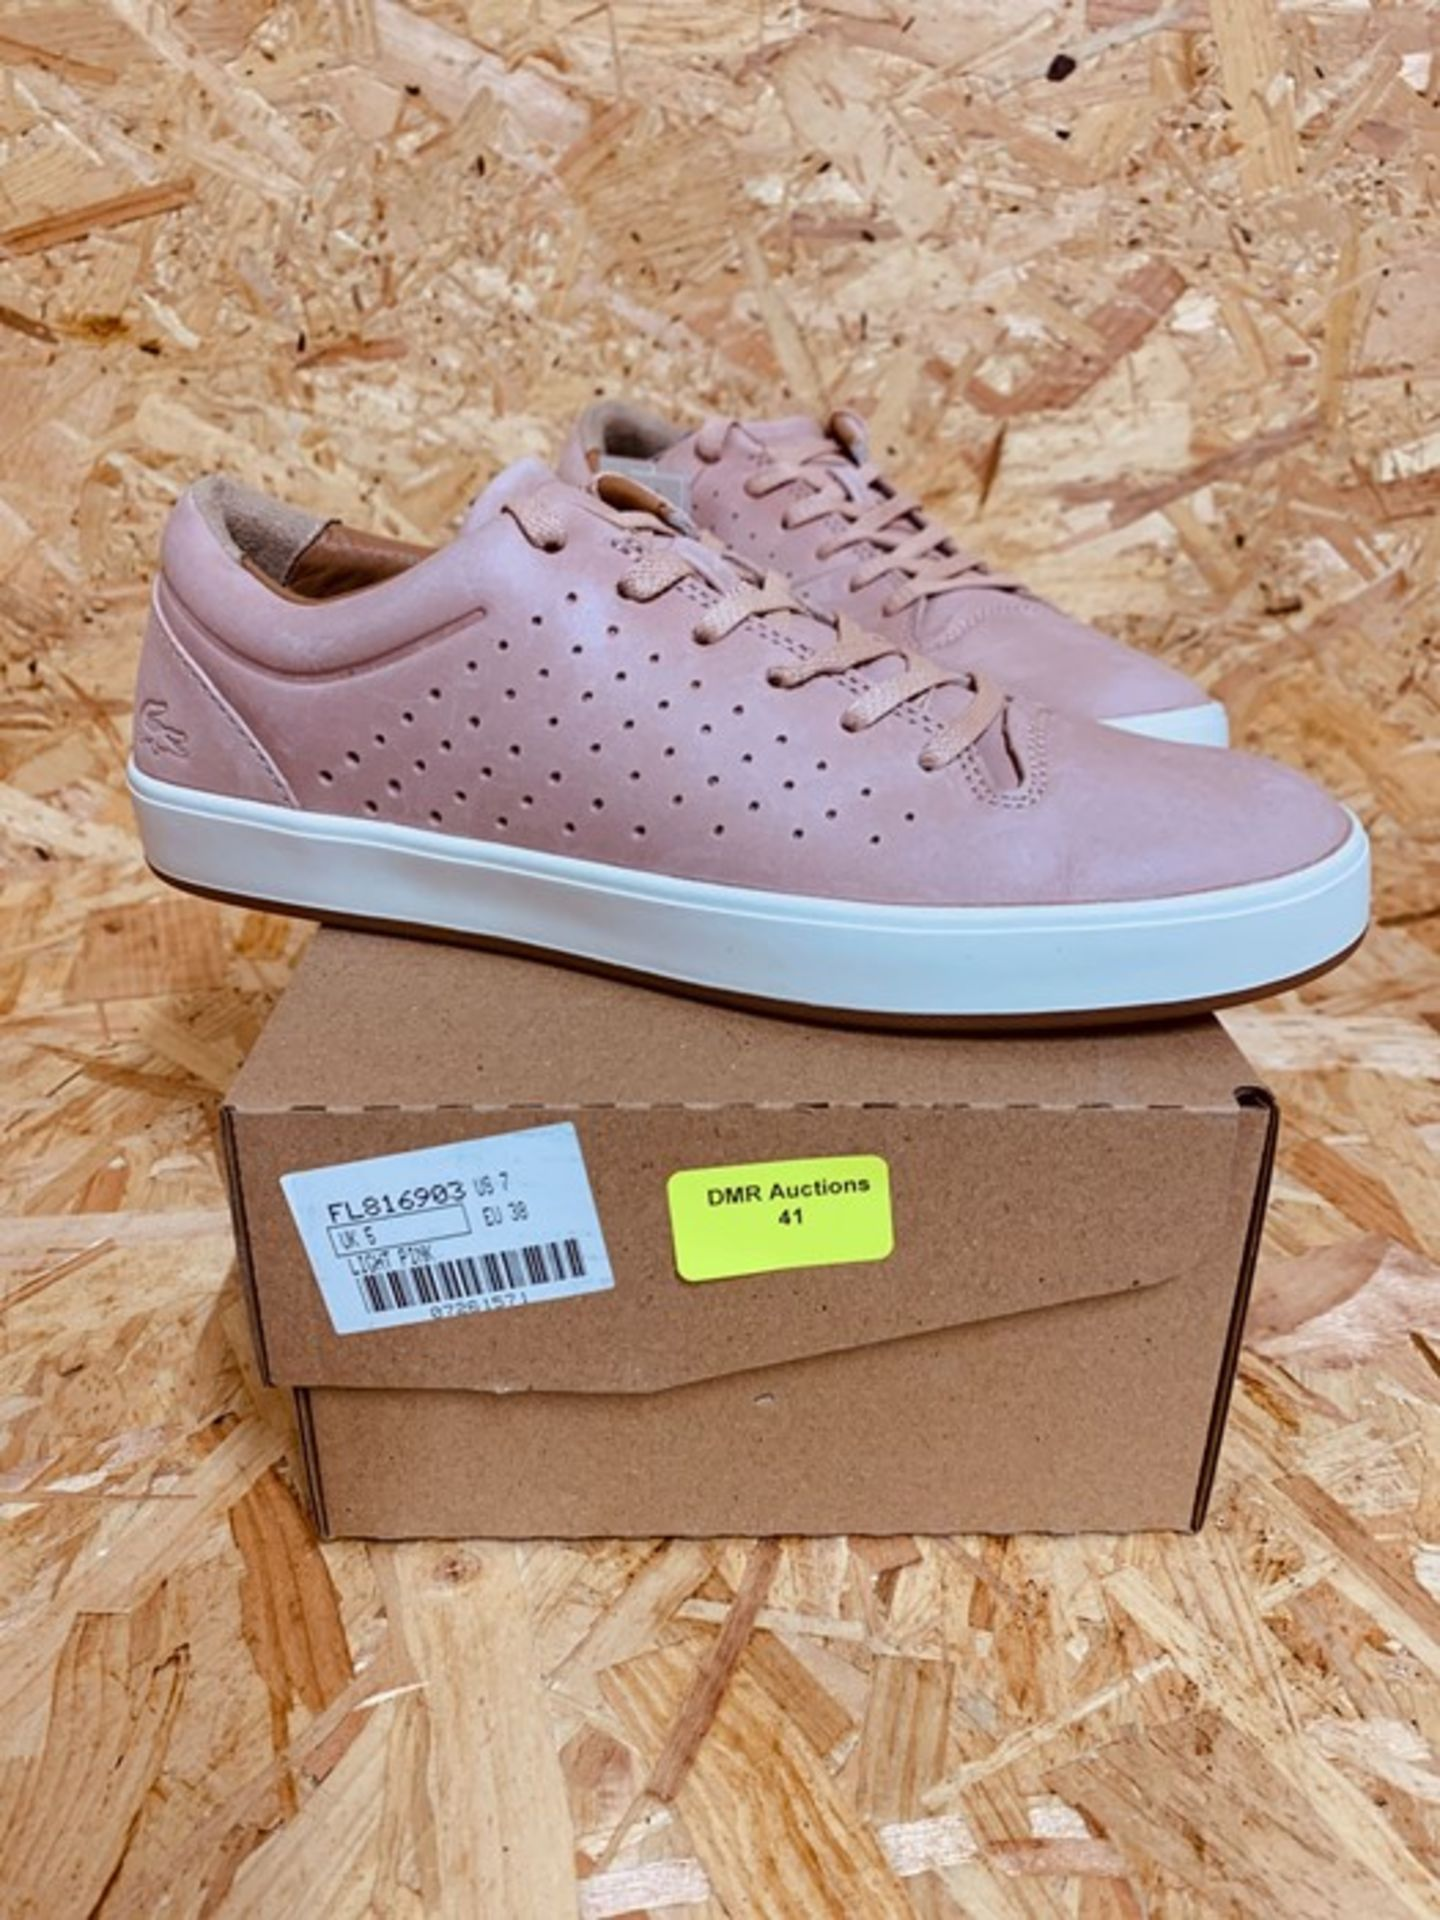 LACOSTE LADIES LEATHER SNEAKERS - UK SIZE 5/PINK